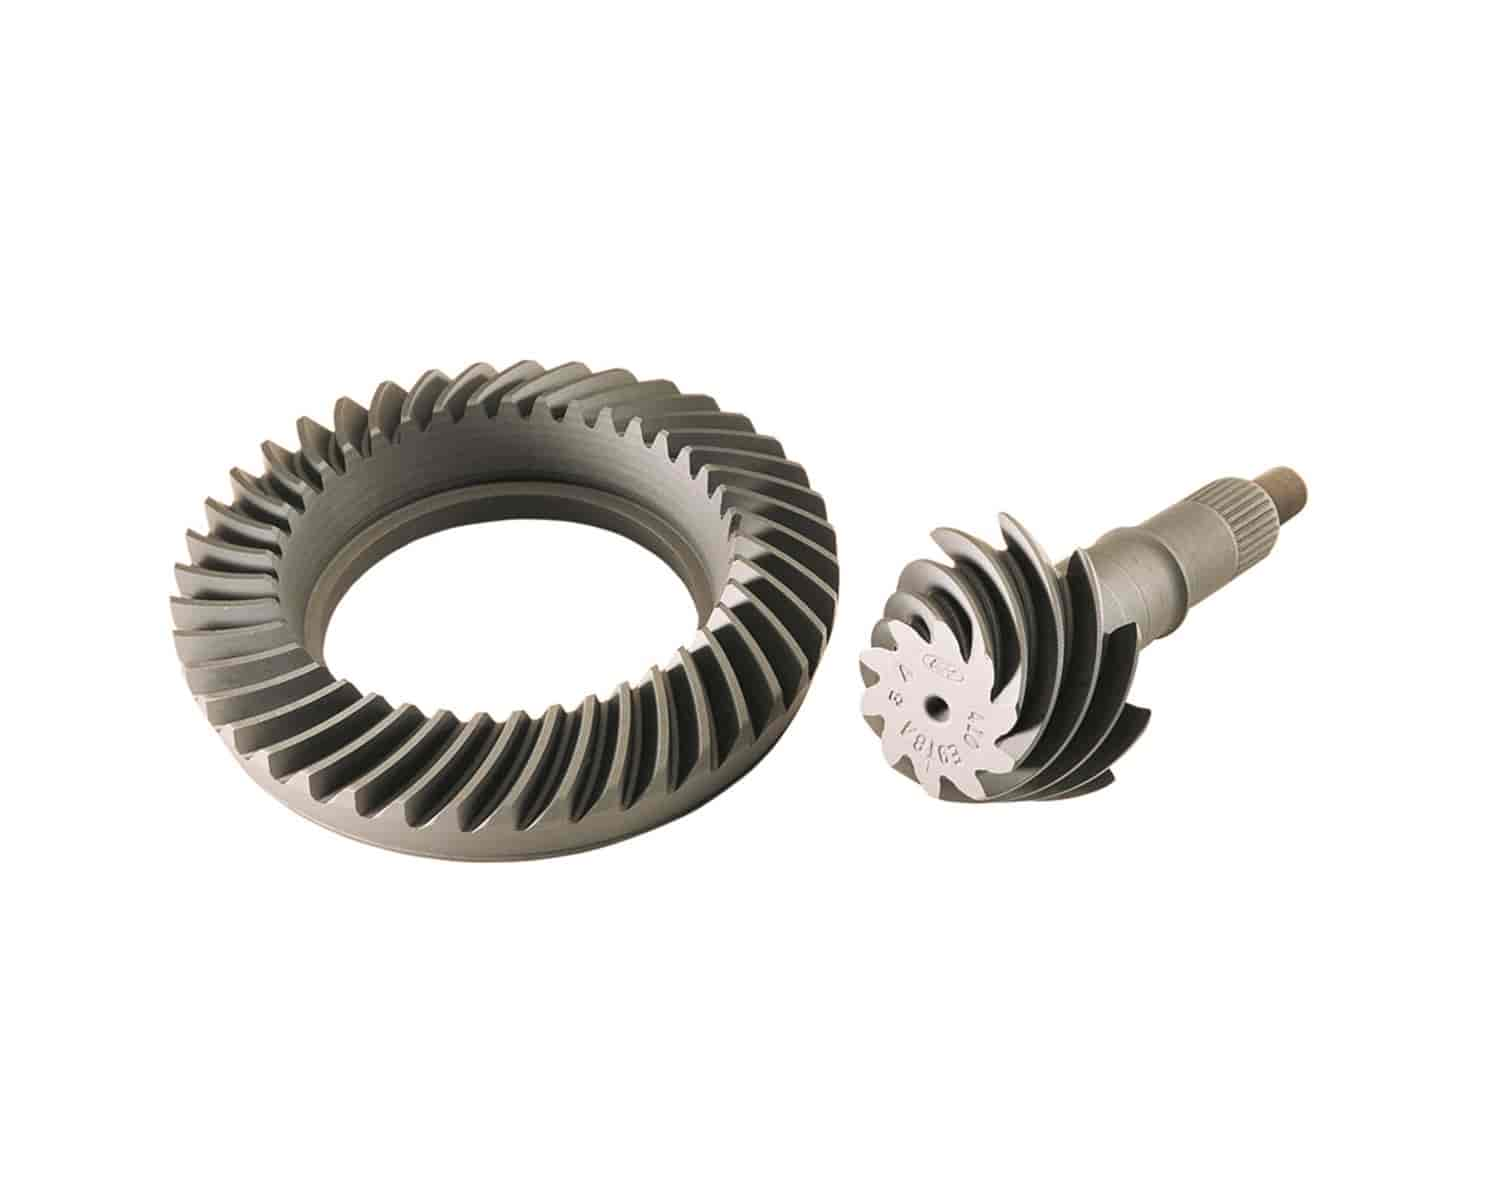 Ford 8.8 3.73 gears used Mustang F150 Bronco Crown Vic